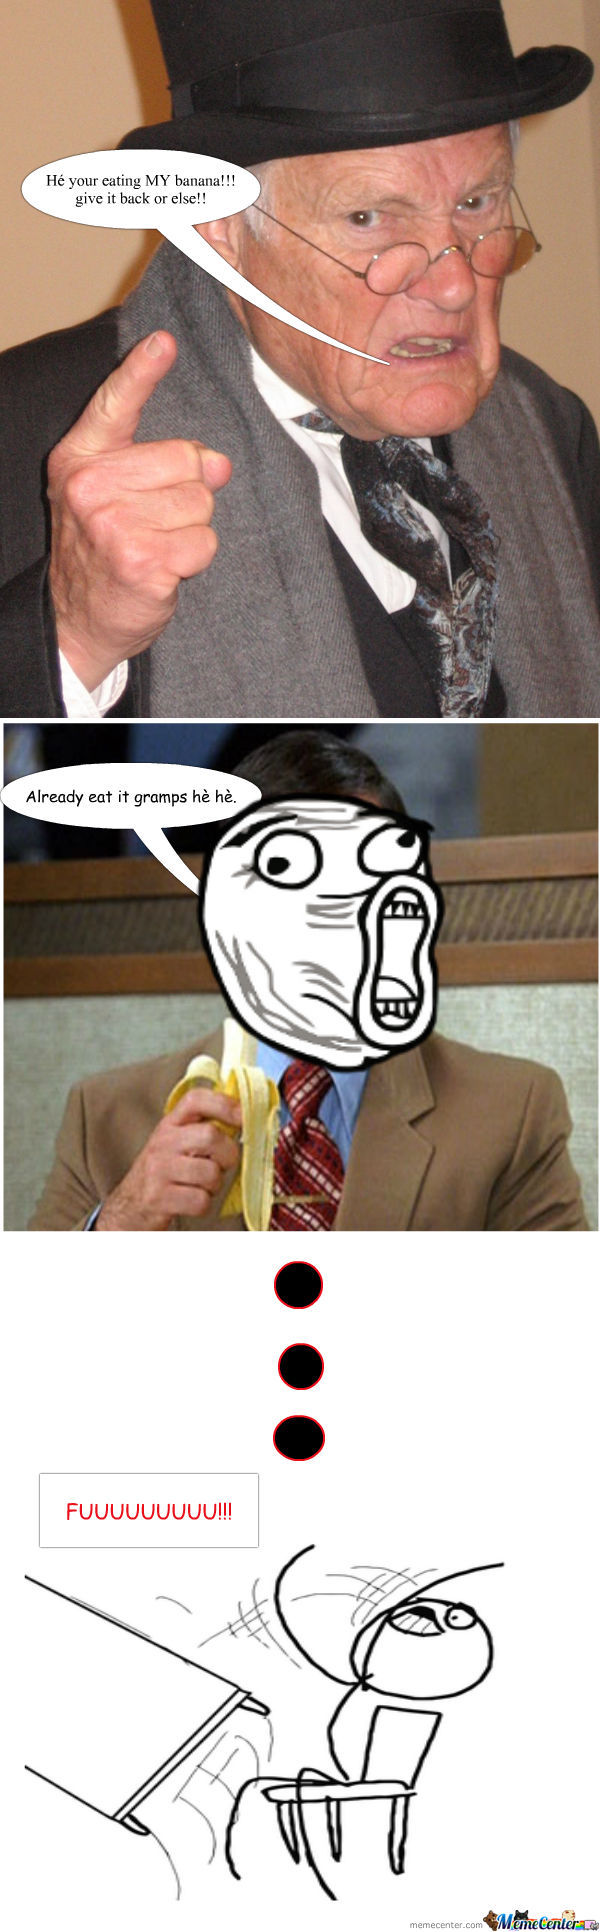 Eating Someones Banana